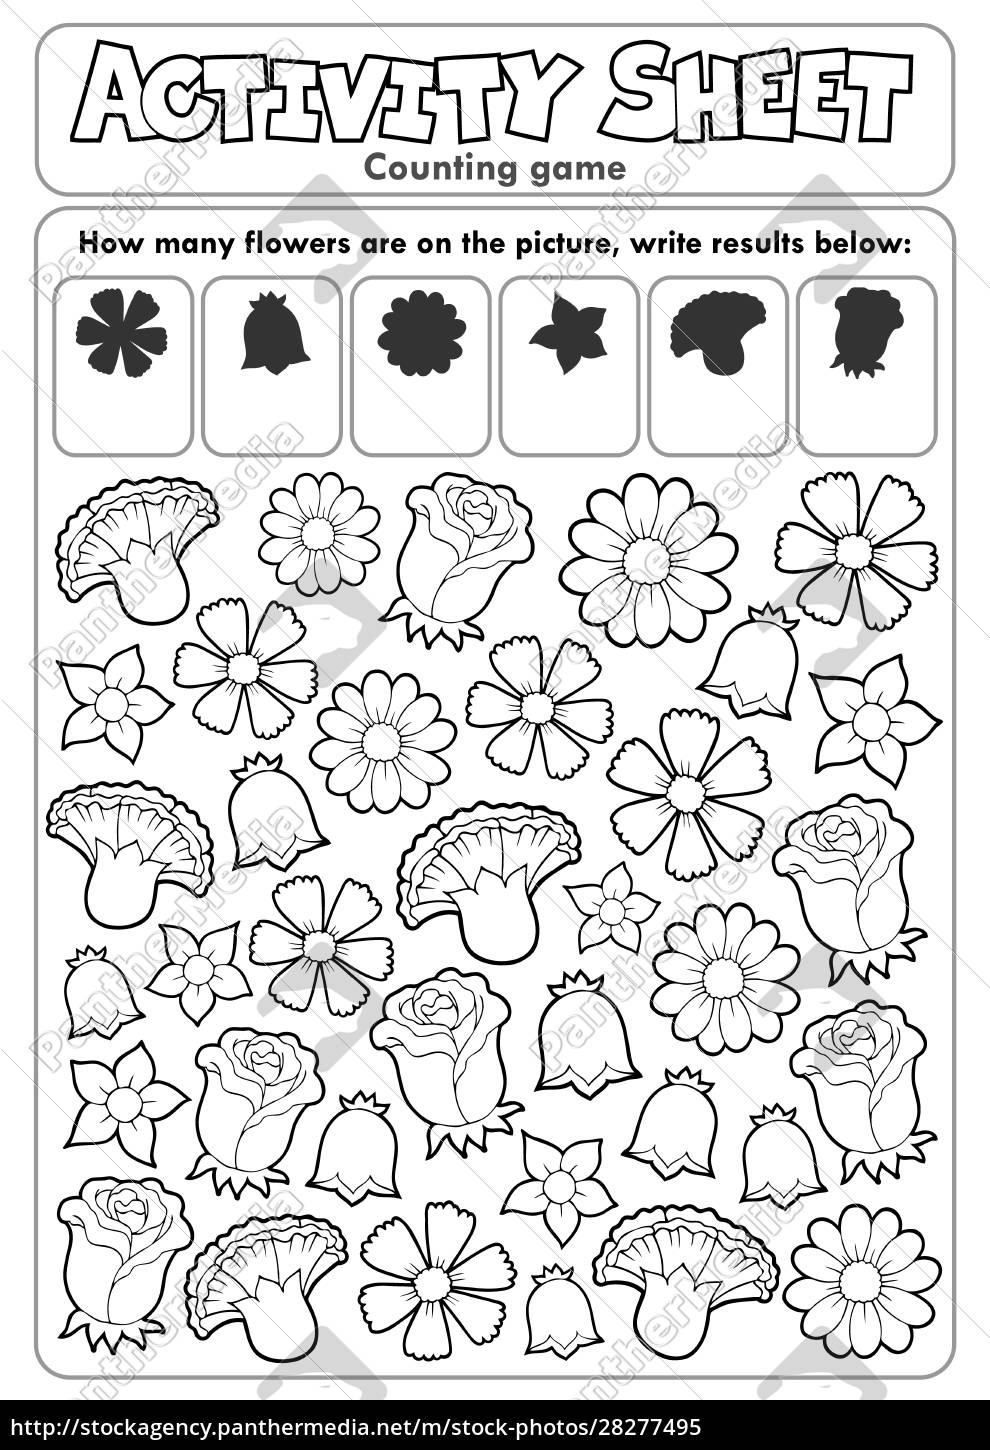 activity, sheet, counting, game, 2 - 28277495